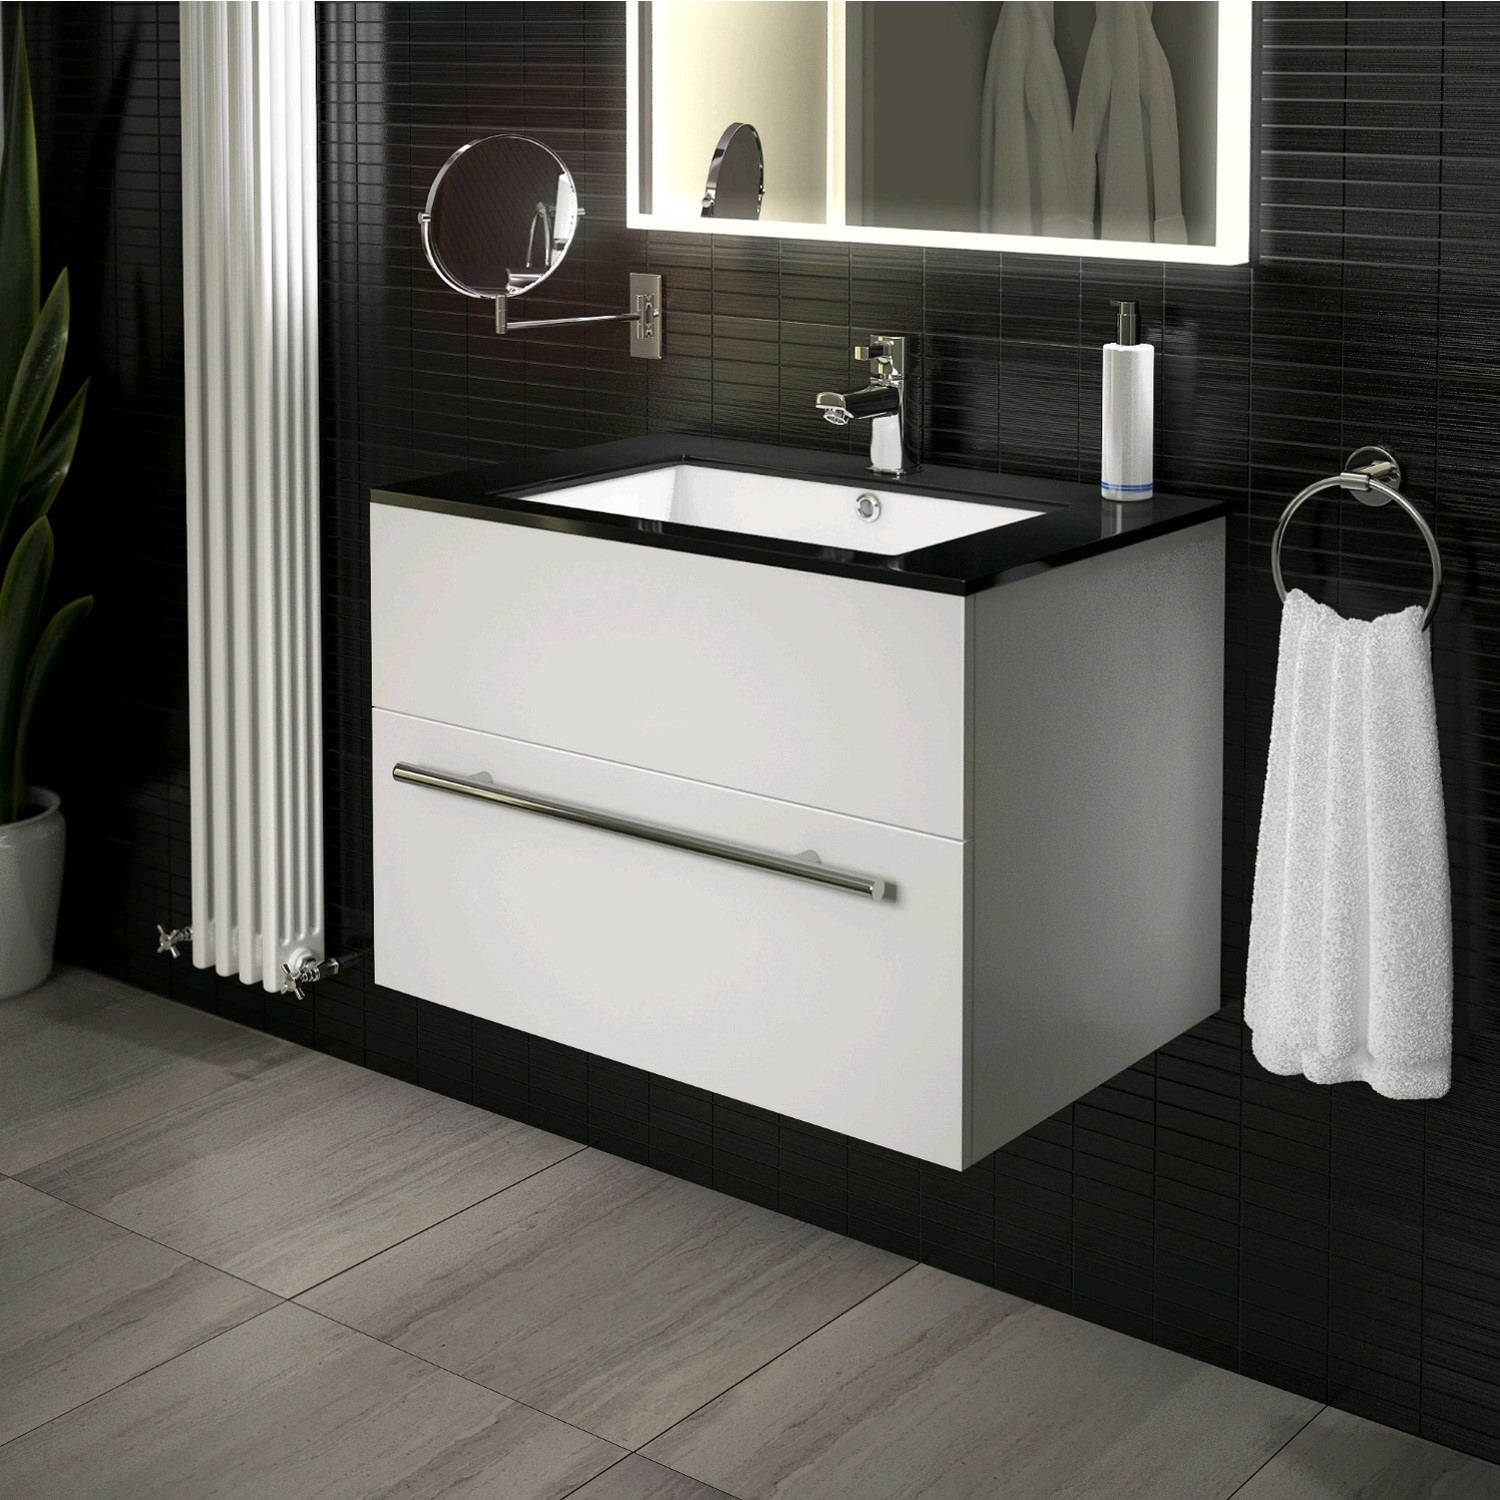 Bathroom Vanity Unit 750mm Cloakroom Classic Gloss White and Ceramic Basin